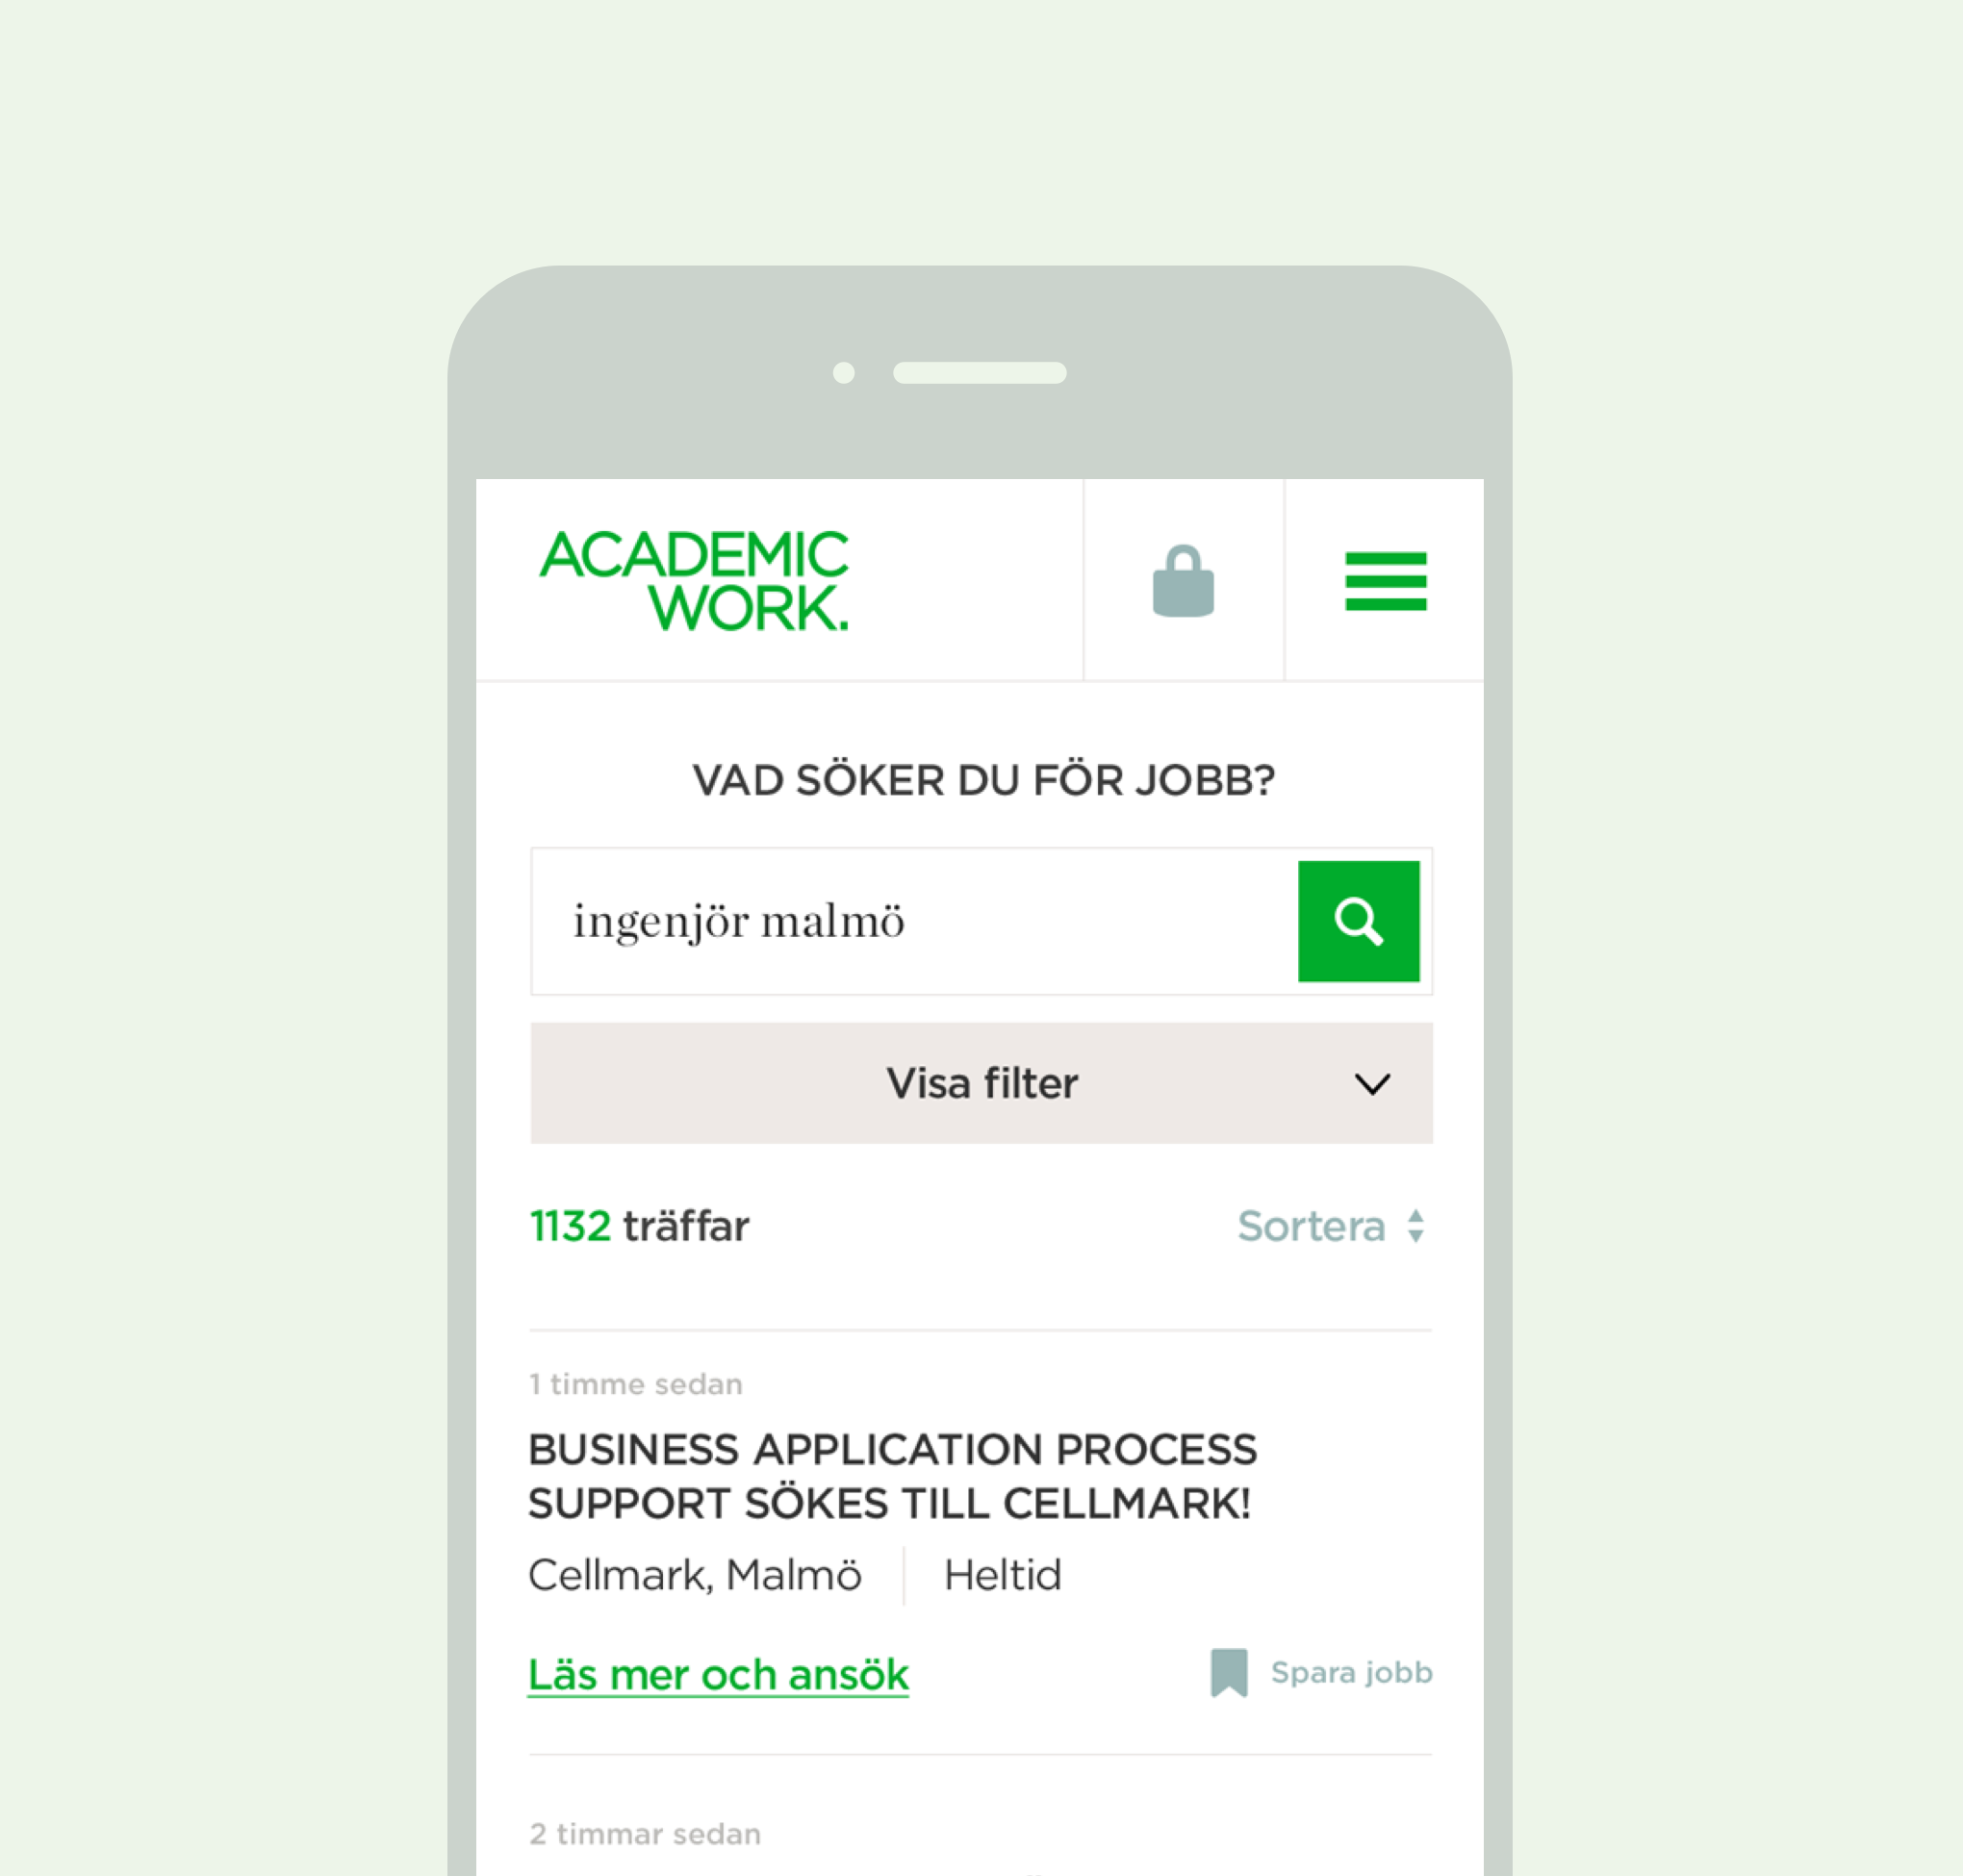 The Academic Work mobile site